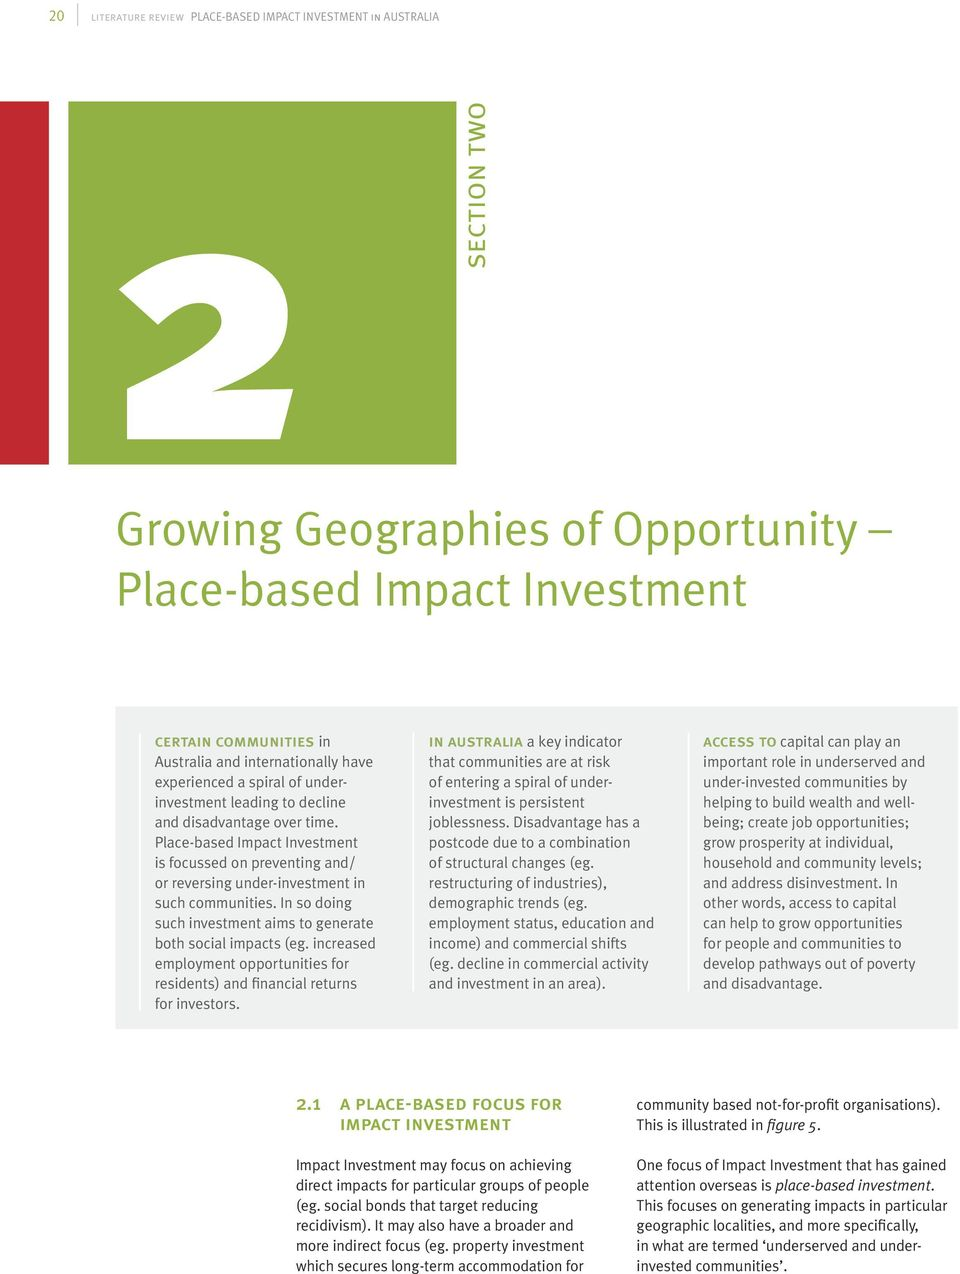 Place-based Impact Investment is focussed on preventing and/ or reversing under-investment in such communities. In so doing such investment aims to generate both social impacts (eg.